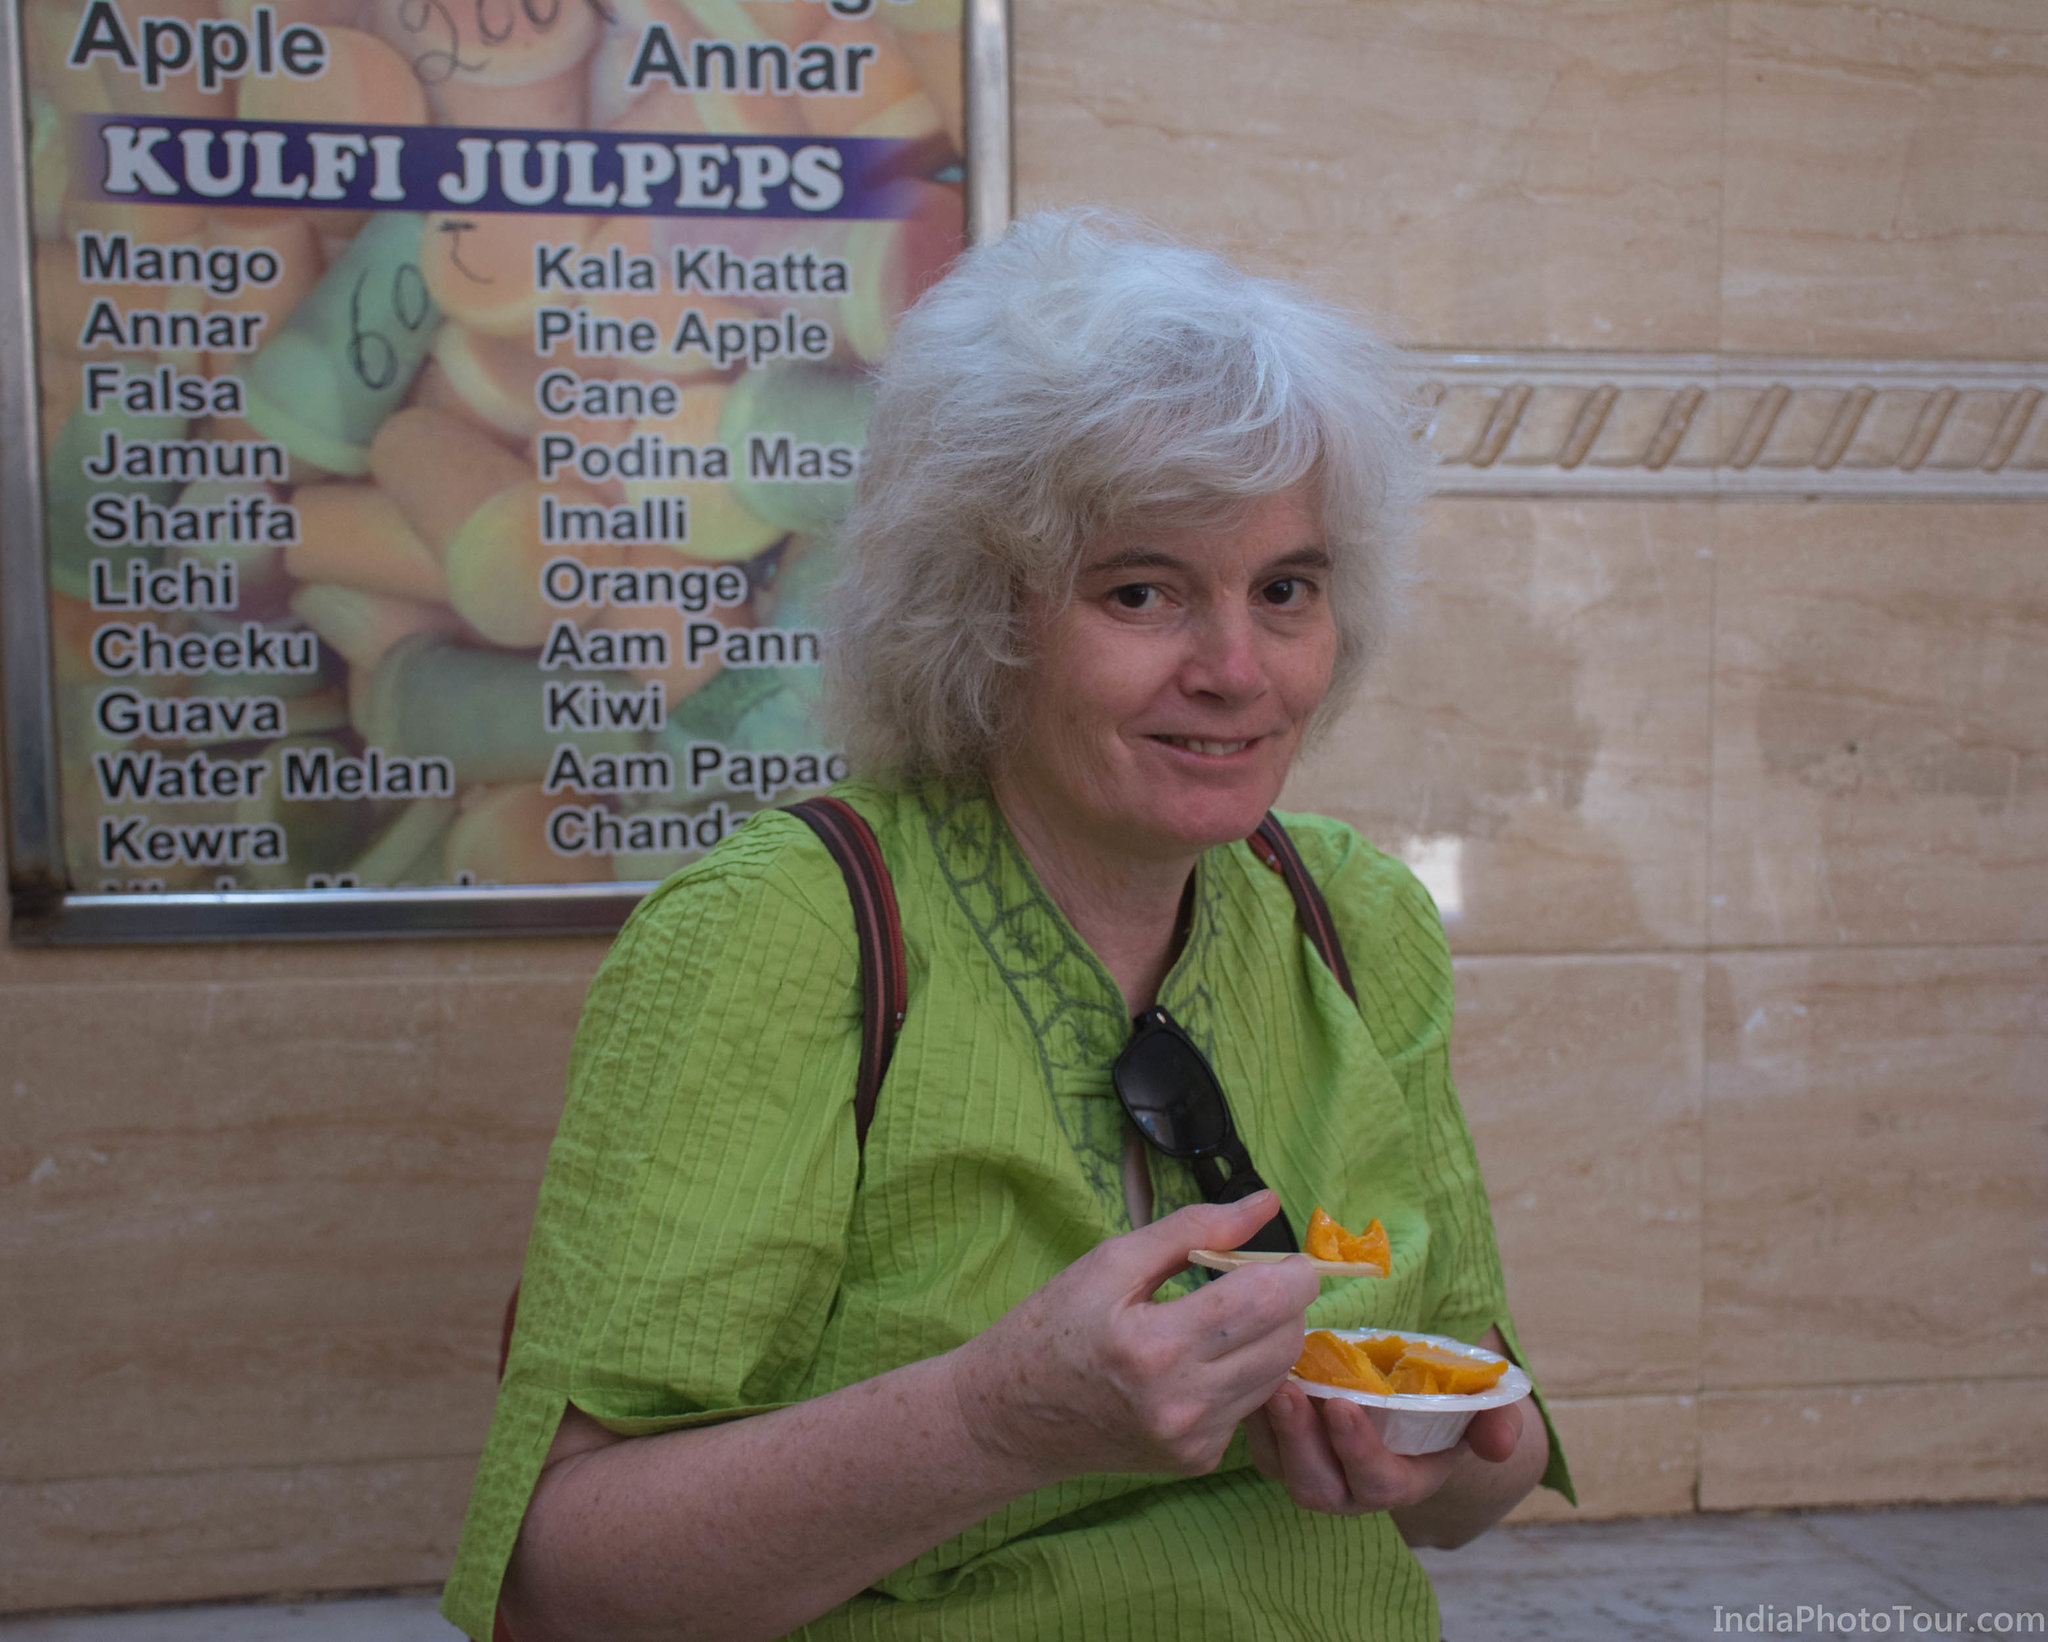 Having a taste of local kulfi (icecream)